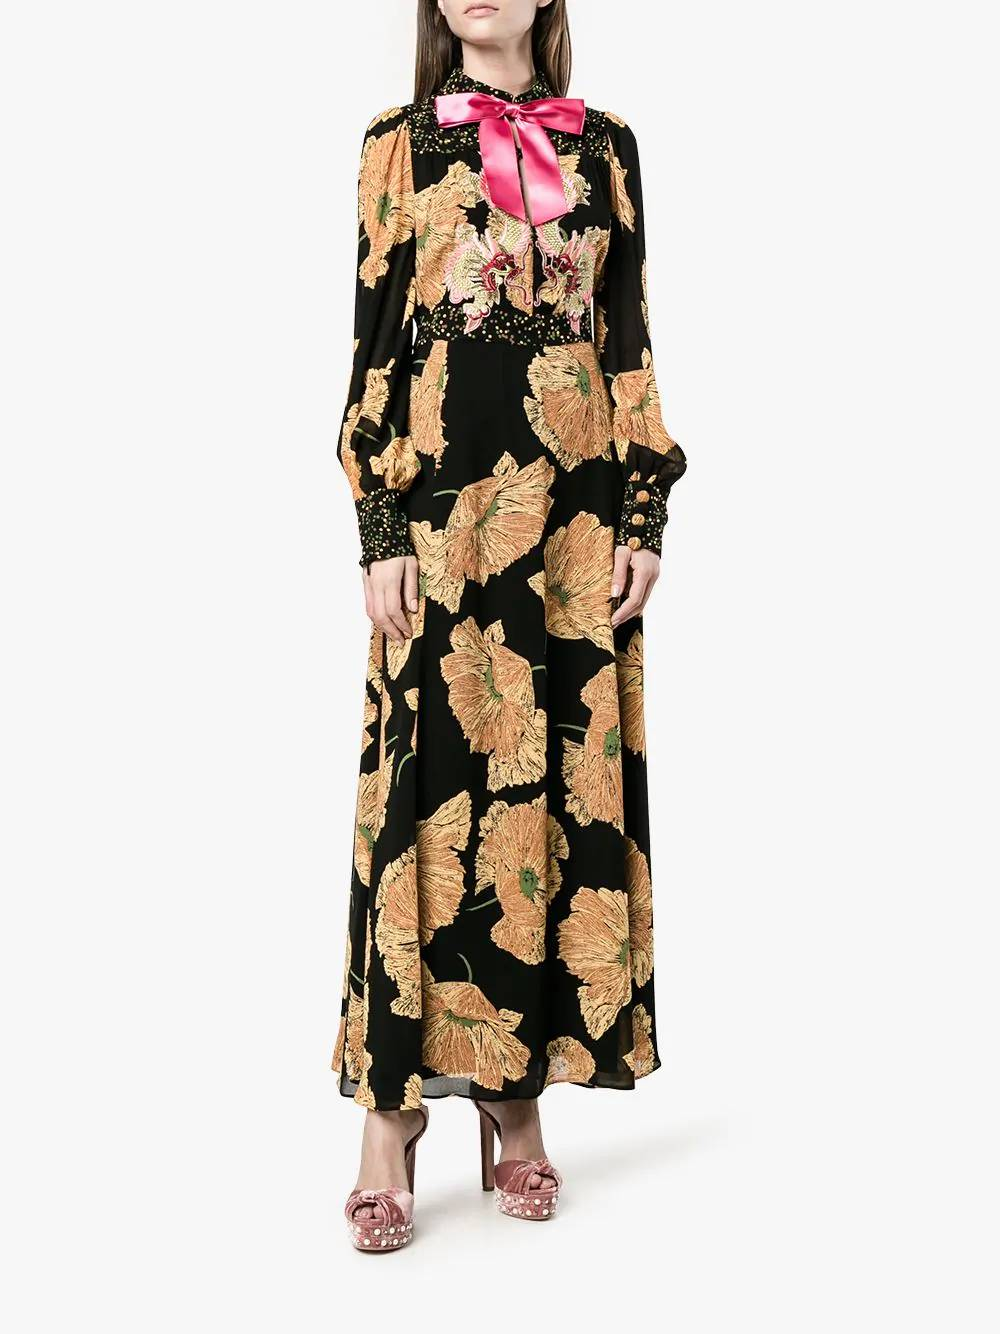 34f316513 GUCCI Poppy Print Black Bow Detail Silk Multi Gown - We Select Dresses